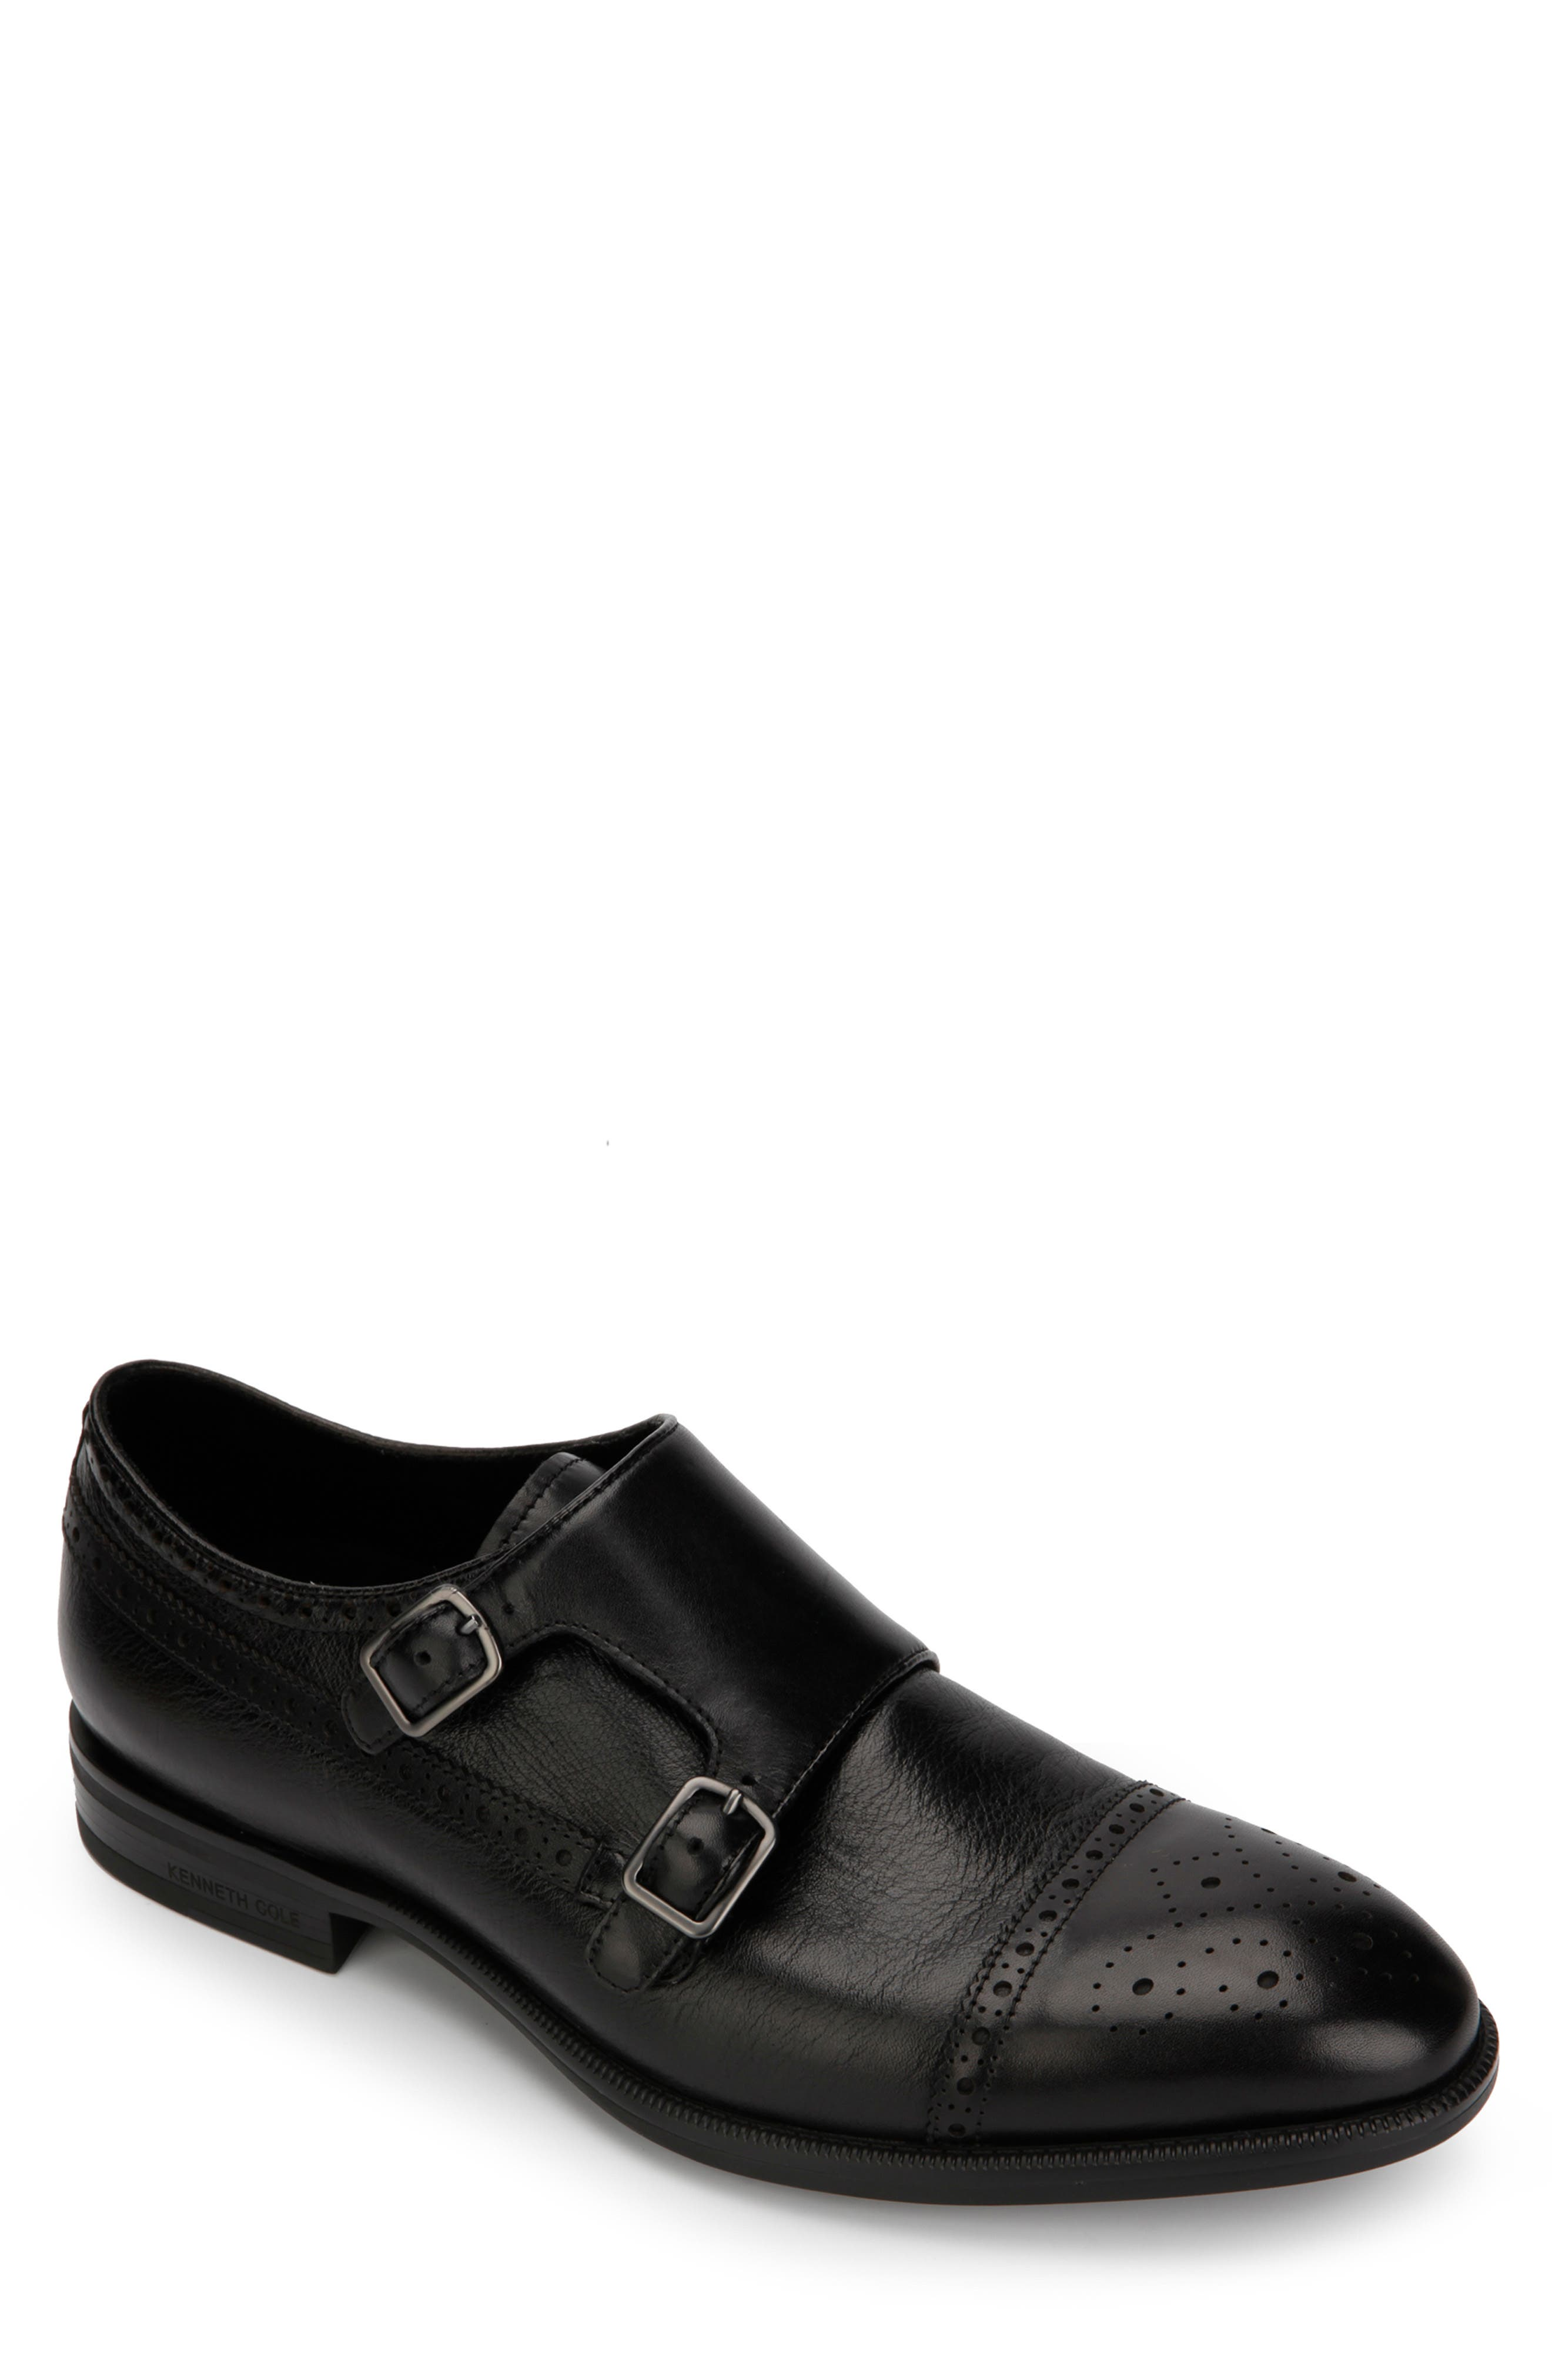 KENNETH COLE NEW YORK Futurepod Double Monk Strap Shoe, Main, color, BLACK TUMBLED LEATHER